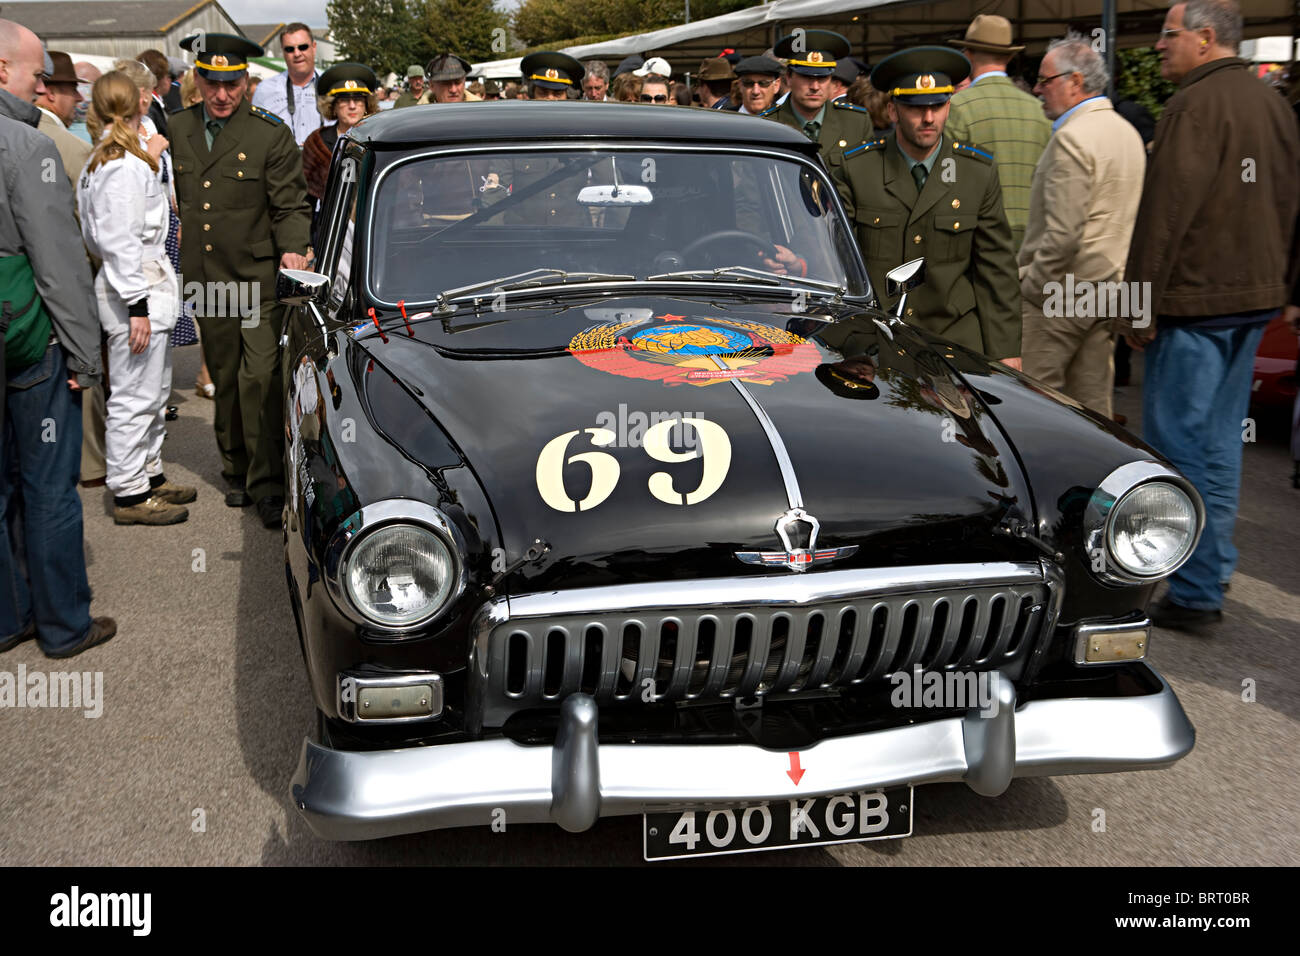 GAZ Volga MA21 car with KGB at Goodwood Revival 2010 Stock Photo